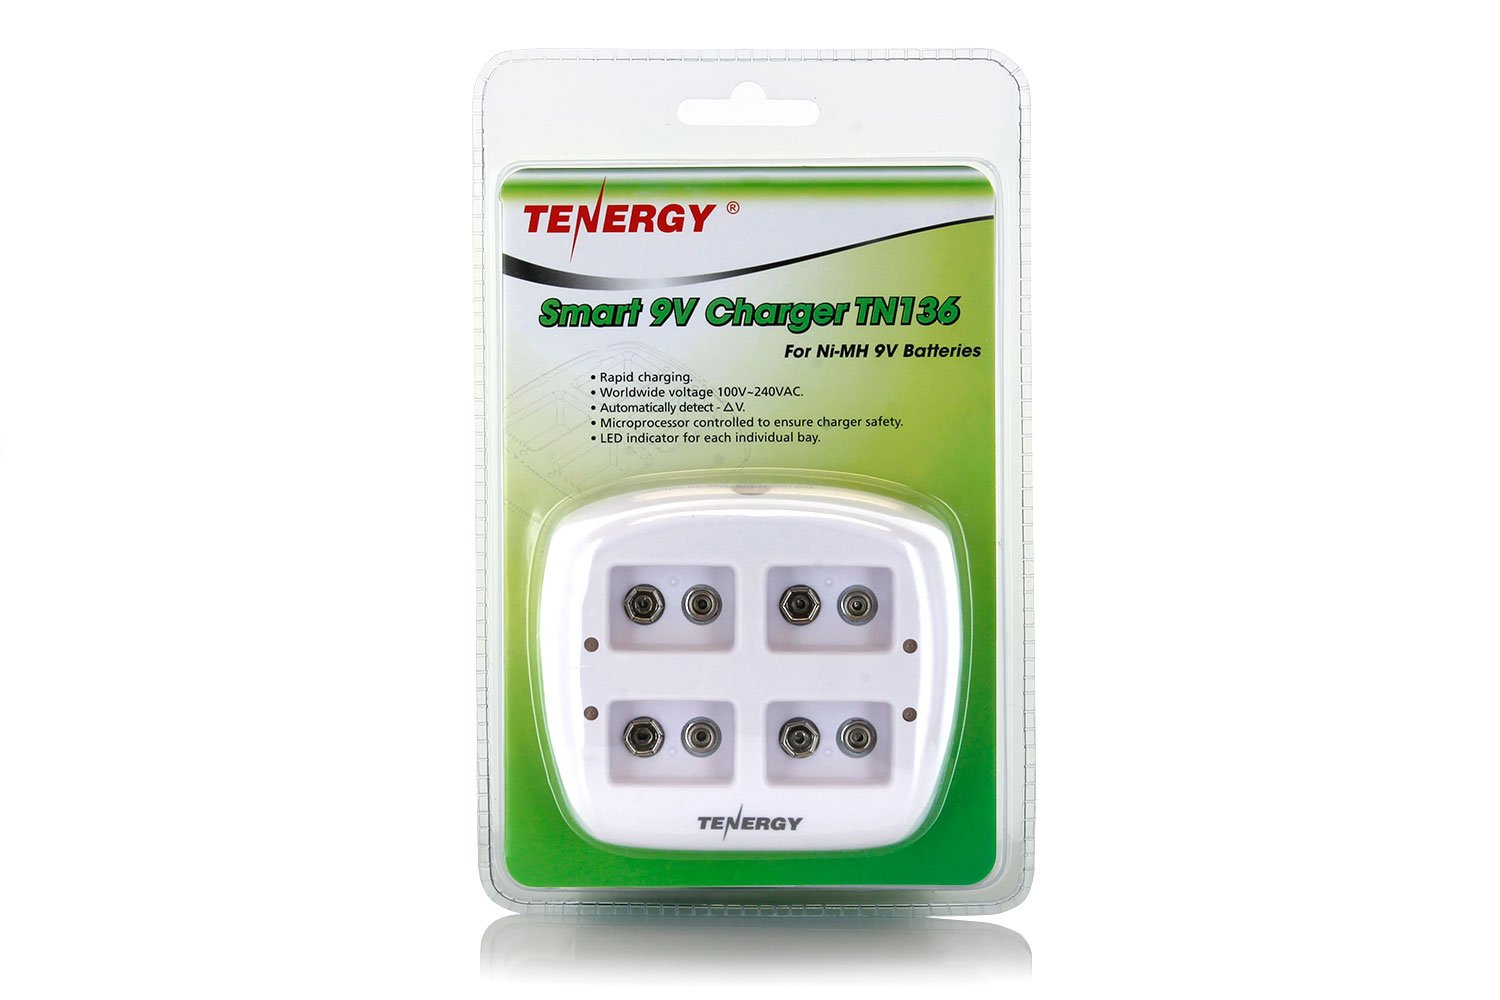 Tenergy Smart 9V 4 Bay Charger TN136 by Tenergy (Image #9)